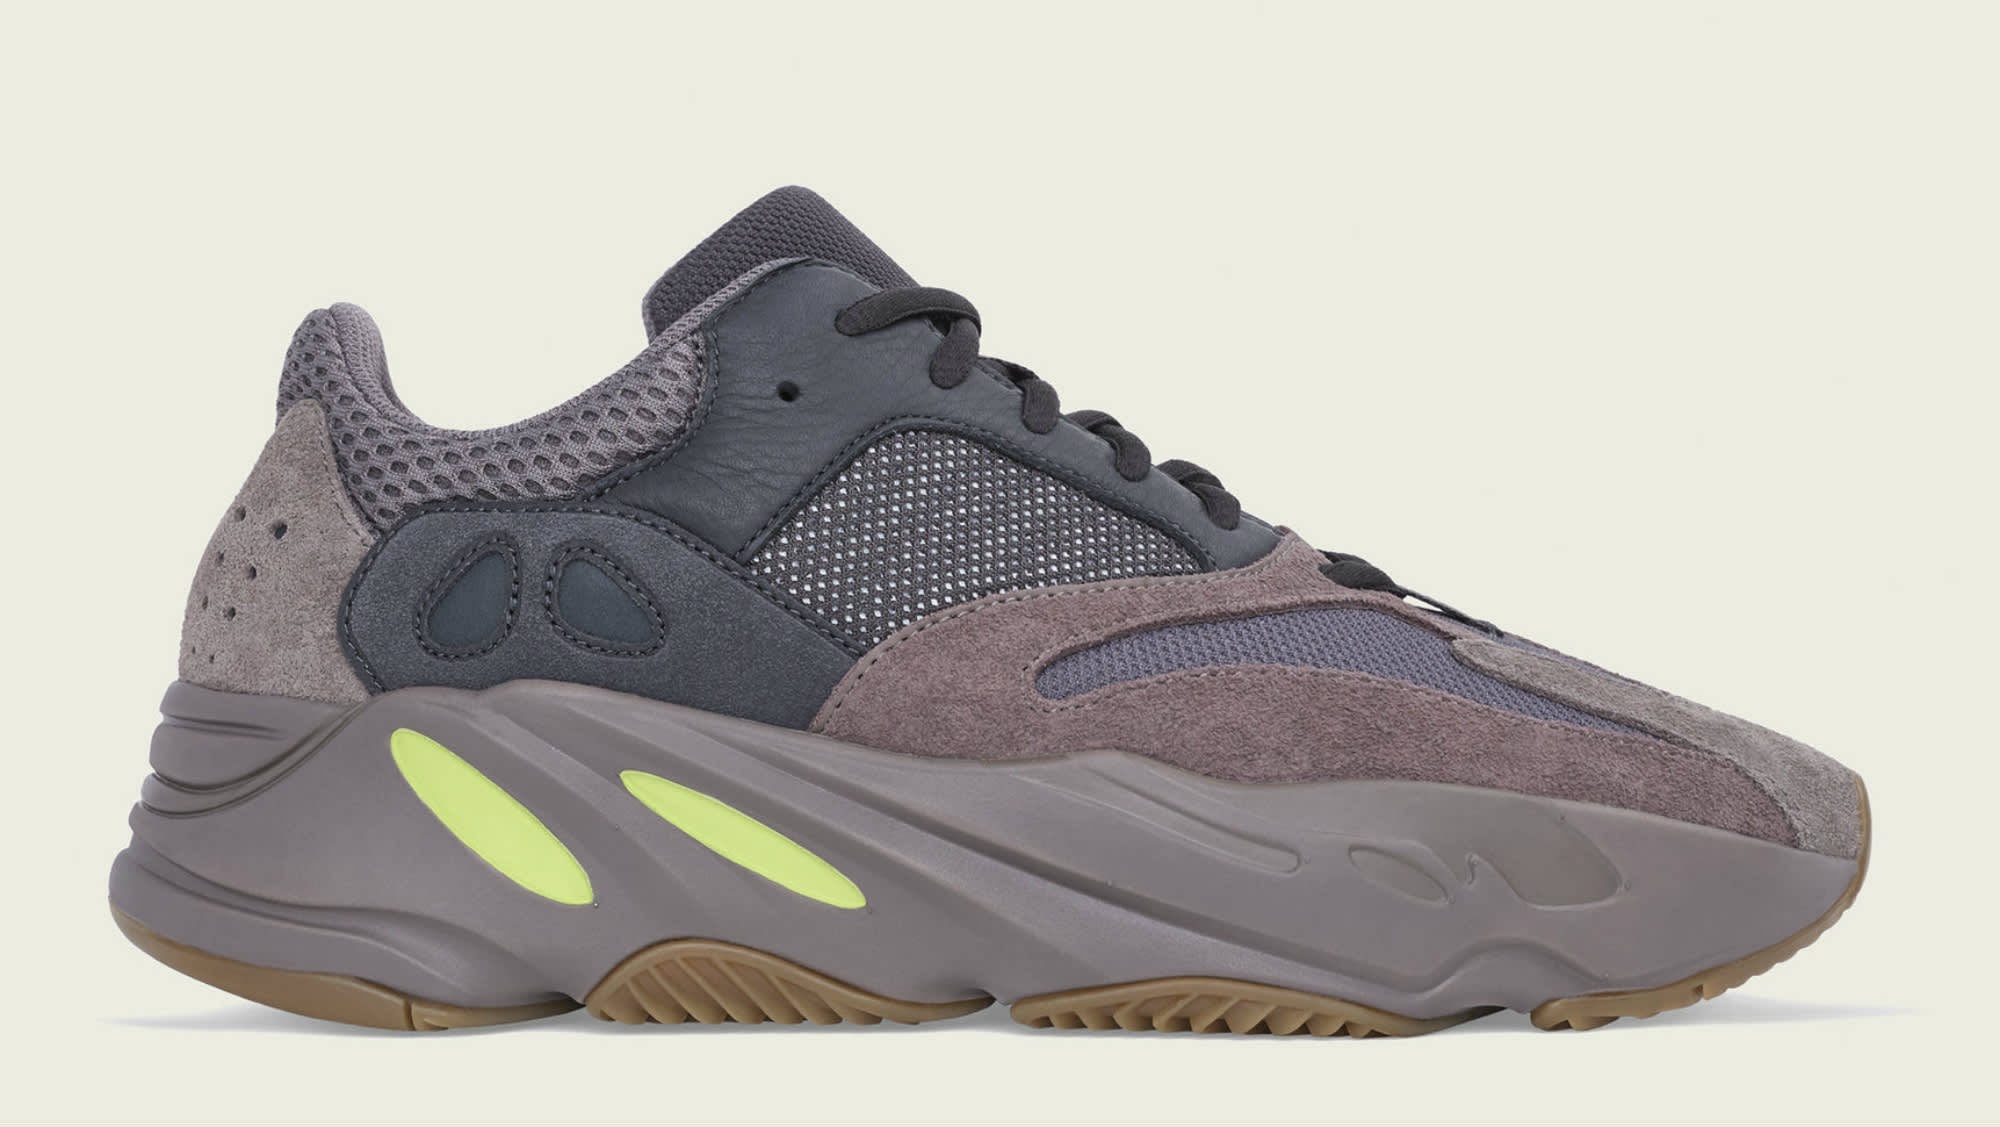 adidas-yeezy-boost-700-mauve-ee9614-release-date